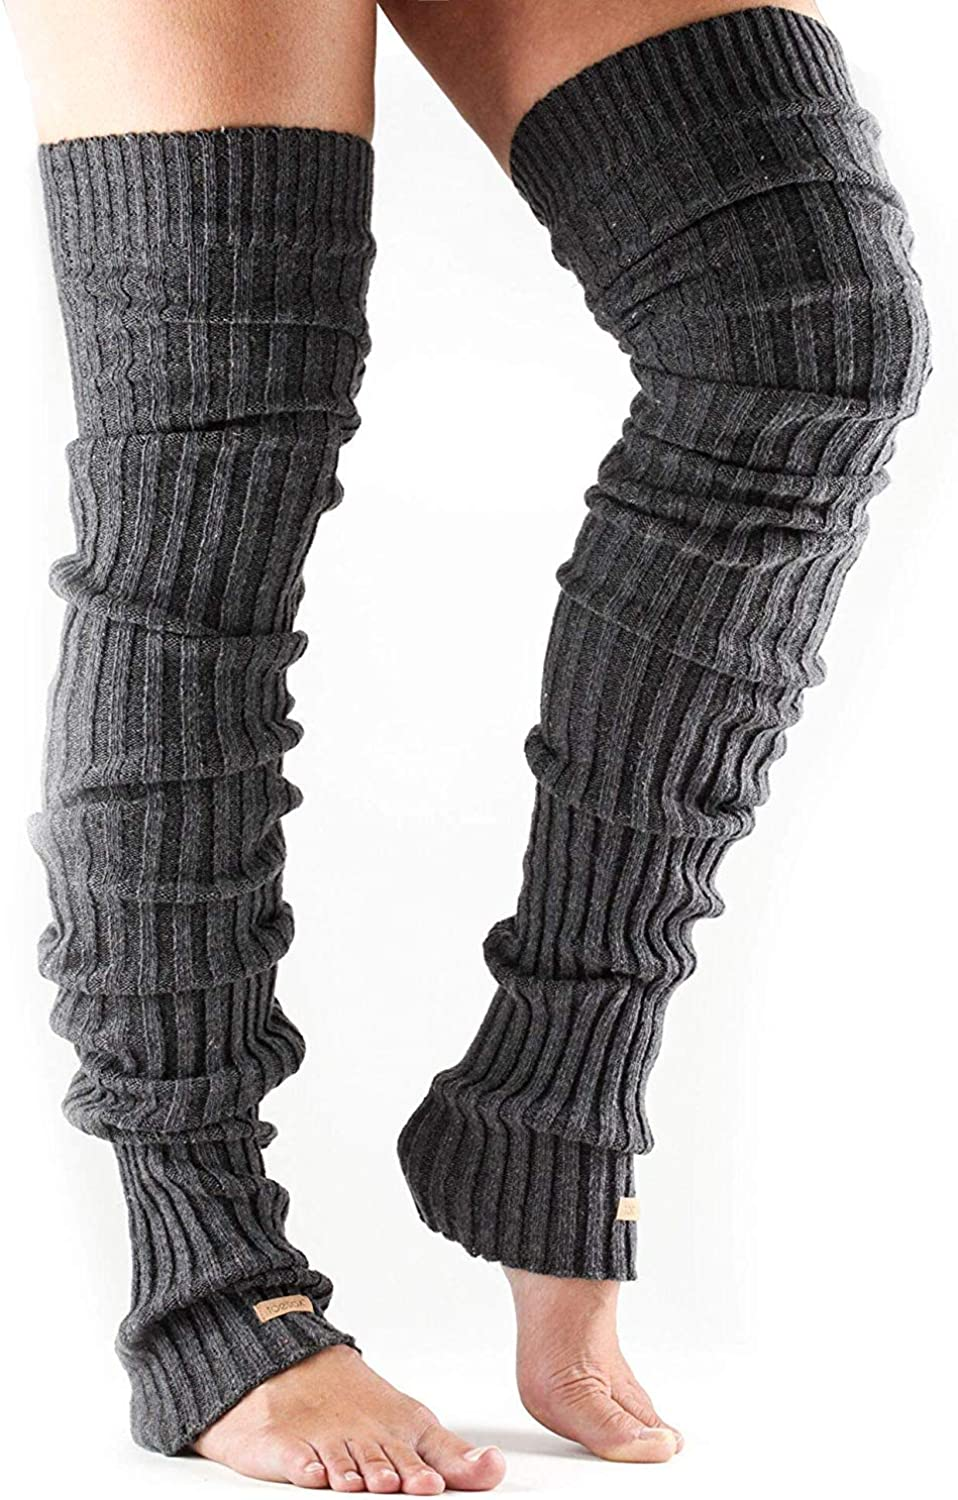 Gray Leg Warmers Gift for Her Striped Leg Warmers Women/'s Wool Leg Warmers Wool Knit Leg Warmers Mexican Leg Warmers